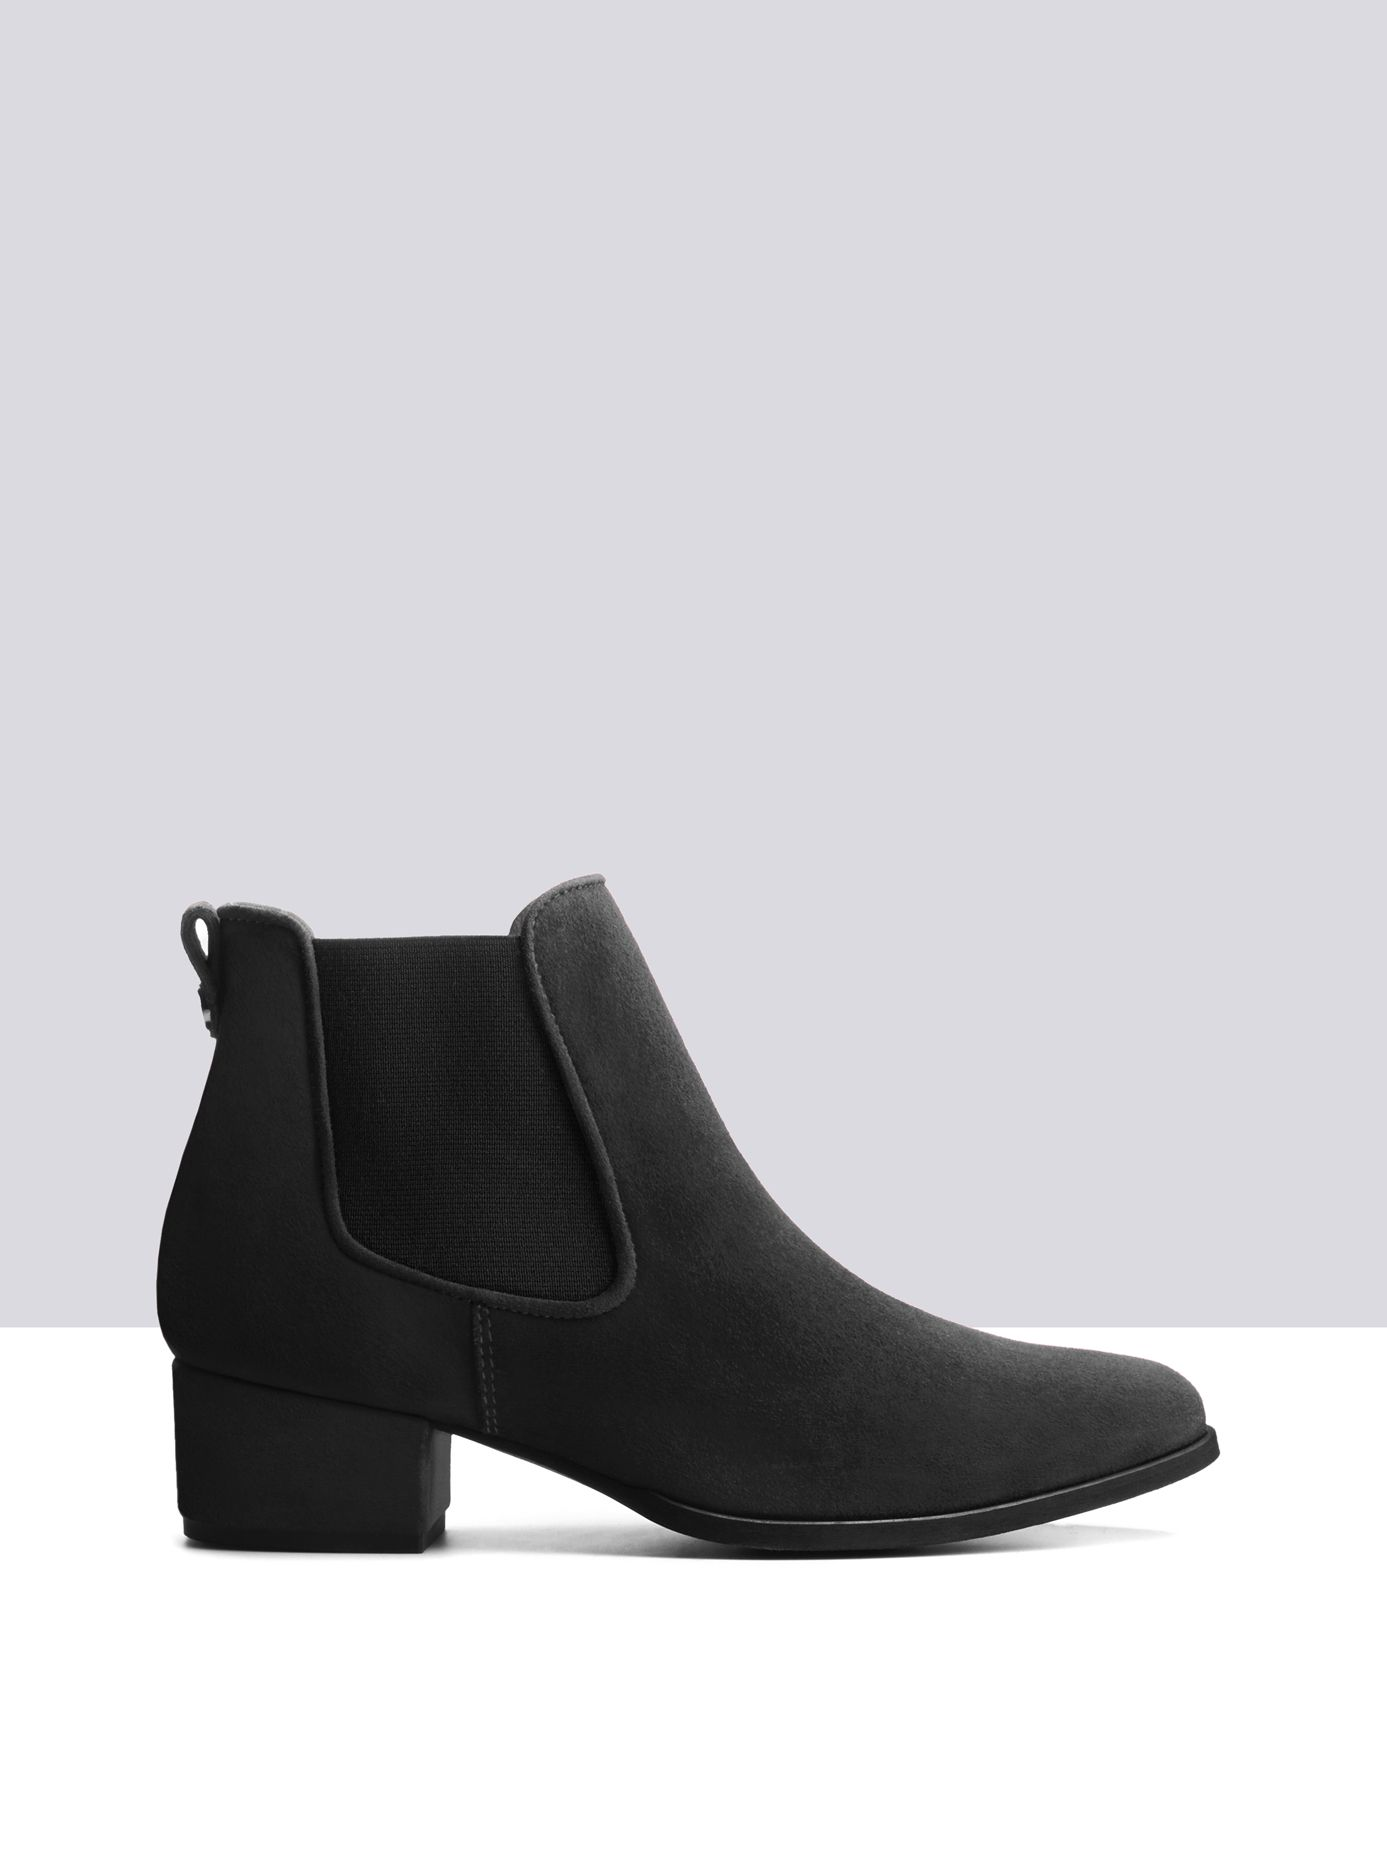 Pixie Black Suede ankle-boots small 1 | Chelsea boots | Pinterest ...